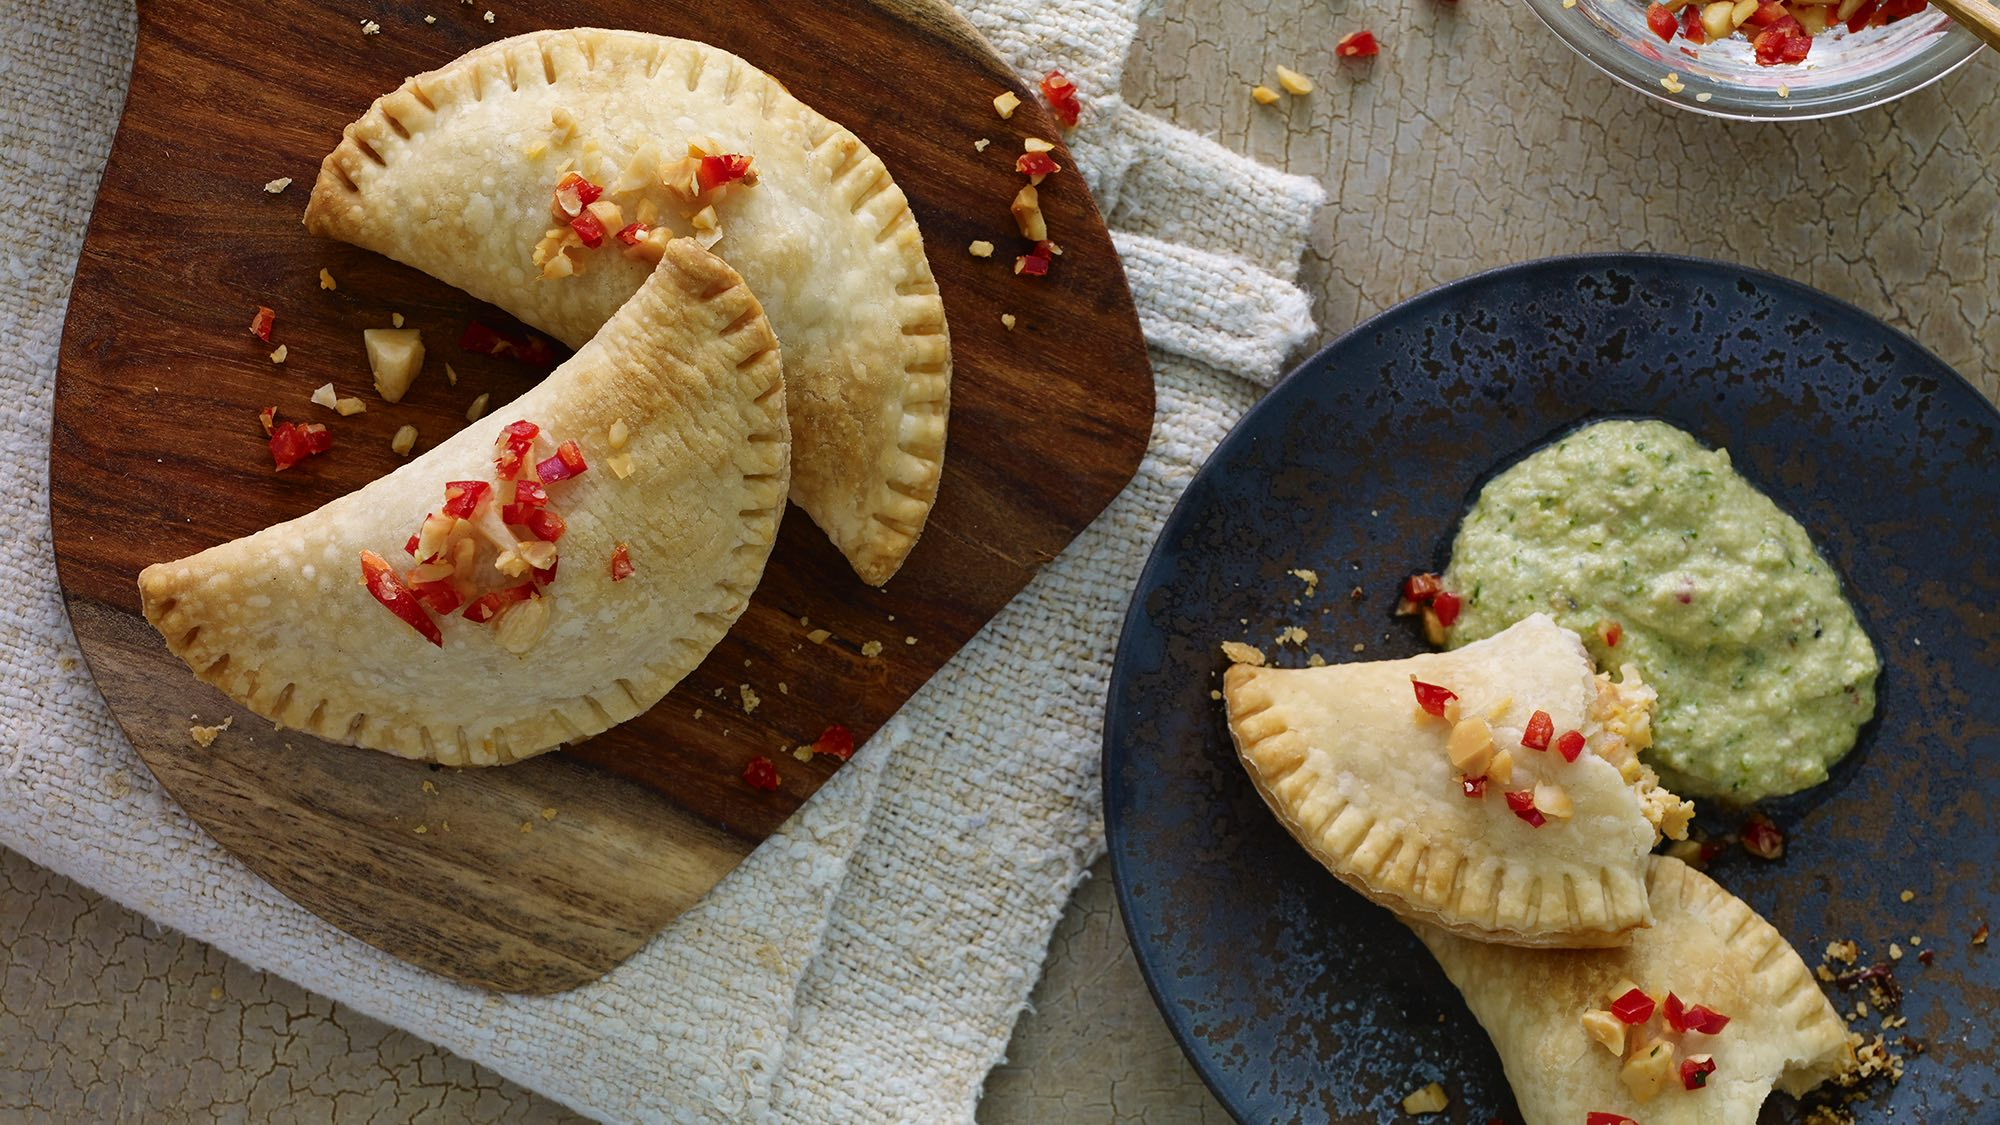 shrimp-and-queso-fresco-empanadas-with-charred-tomatillo-sauce.jpg